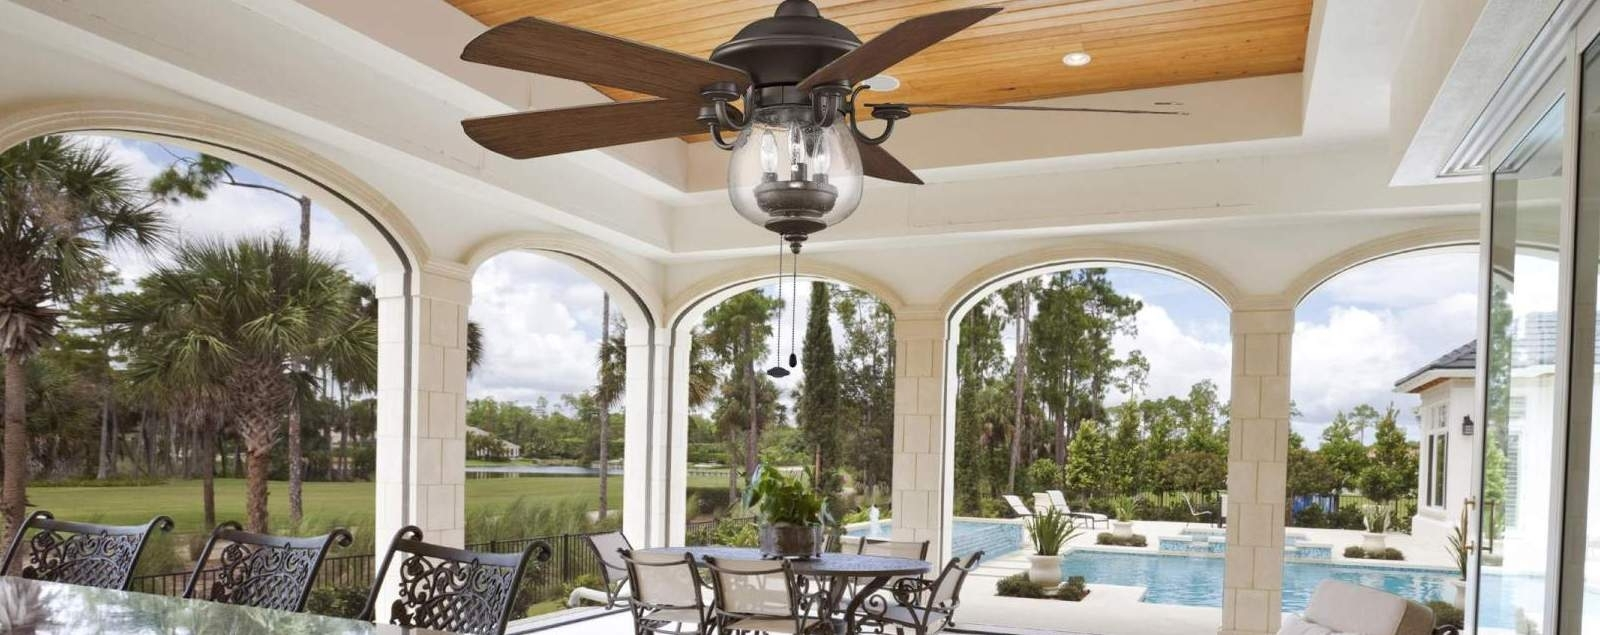 Outdoor Ceiling Fans – Shop Wet, Dry, And Damp Rated Outdoor Fans Throughout 2018 Gold Coast Outdoor Ceiling Fans (View 20 of 20)